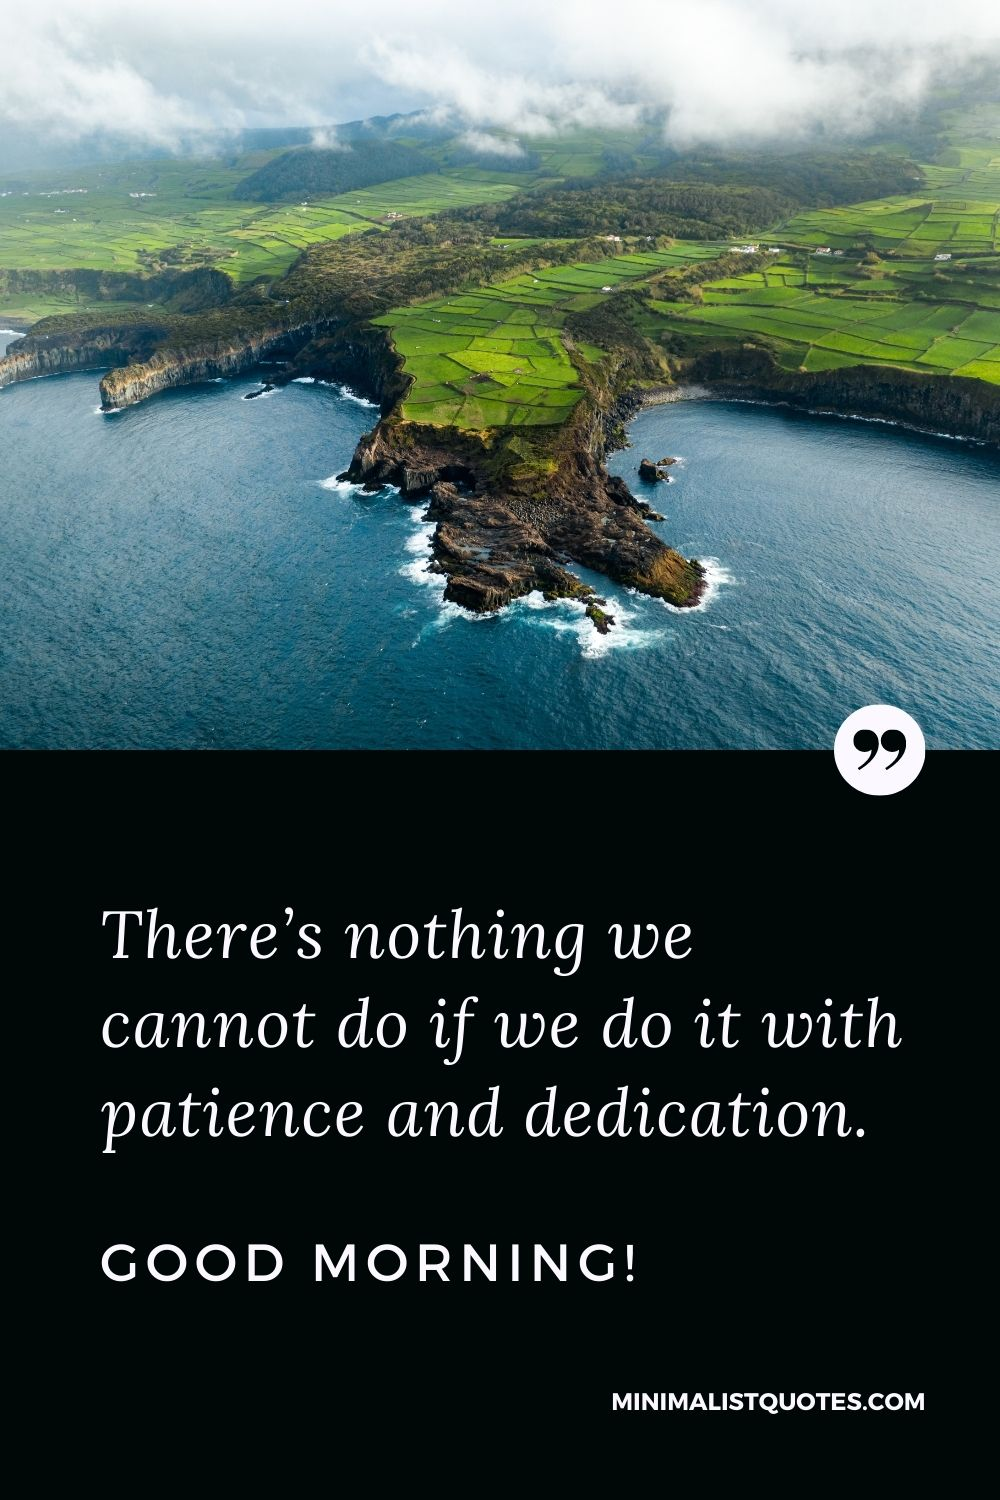 Good Morning Quote, Wish & Message With Image: There's nothing we cannot do if we do it with patience and dedication. Good Morning!